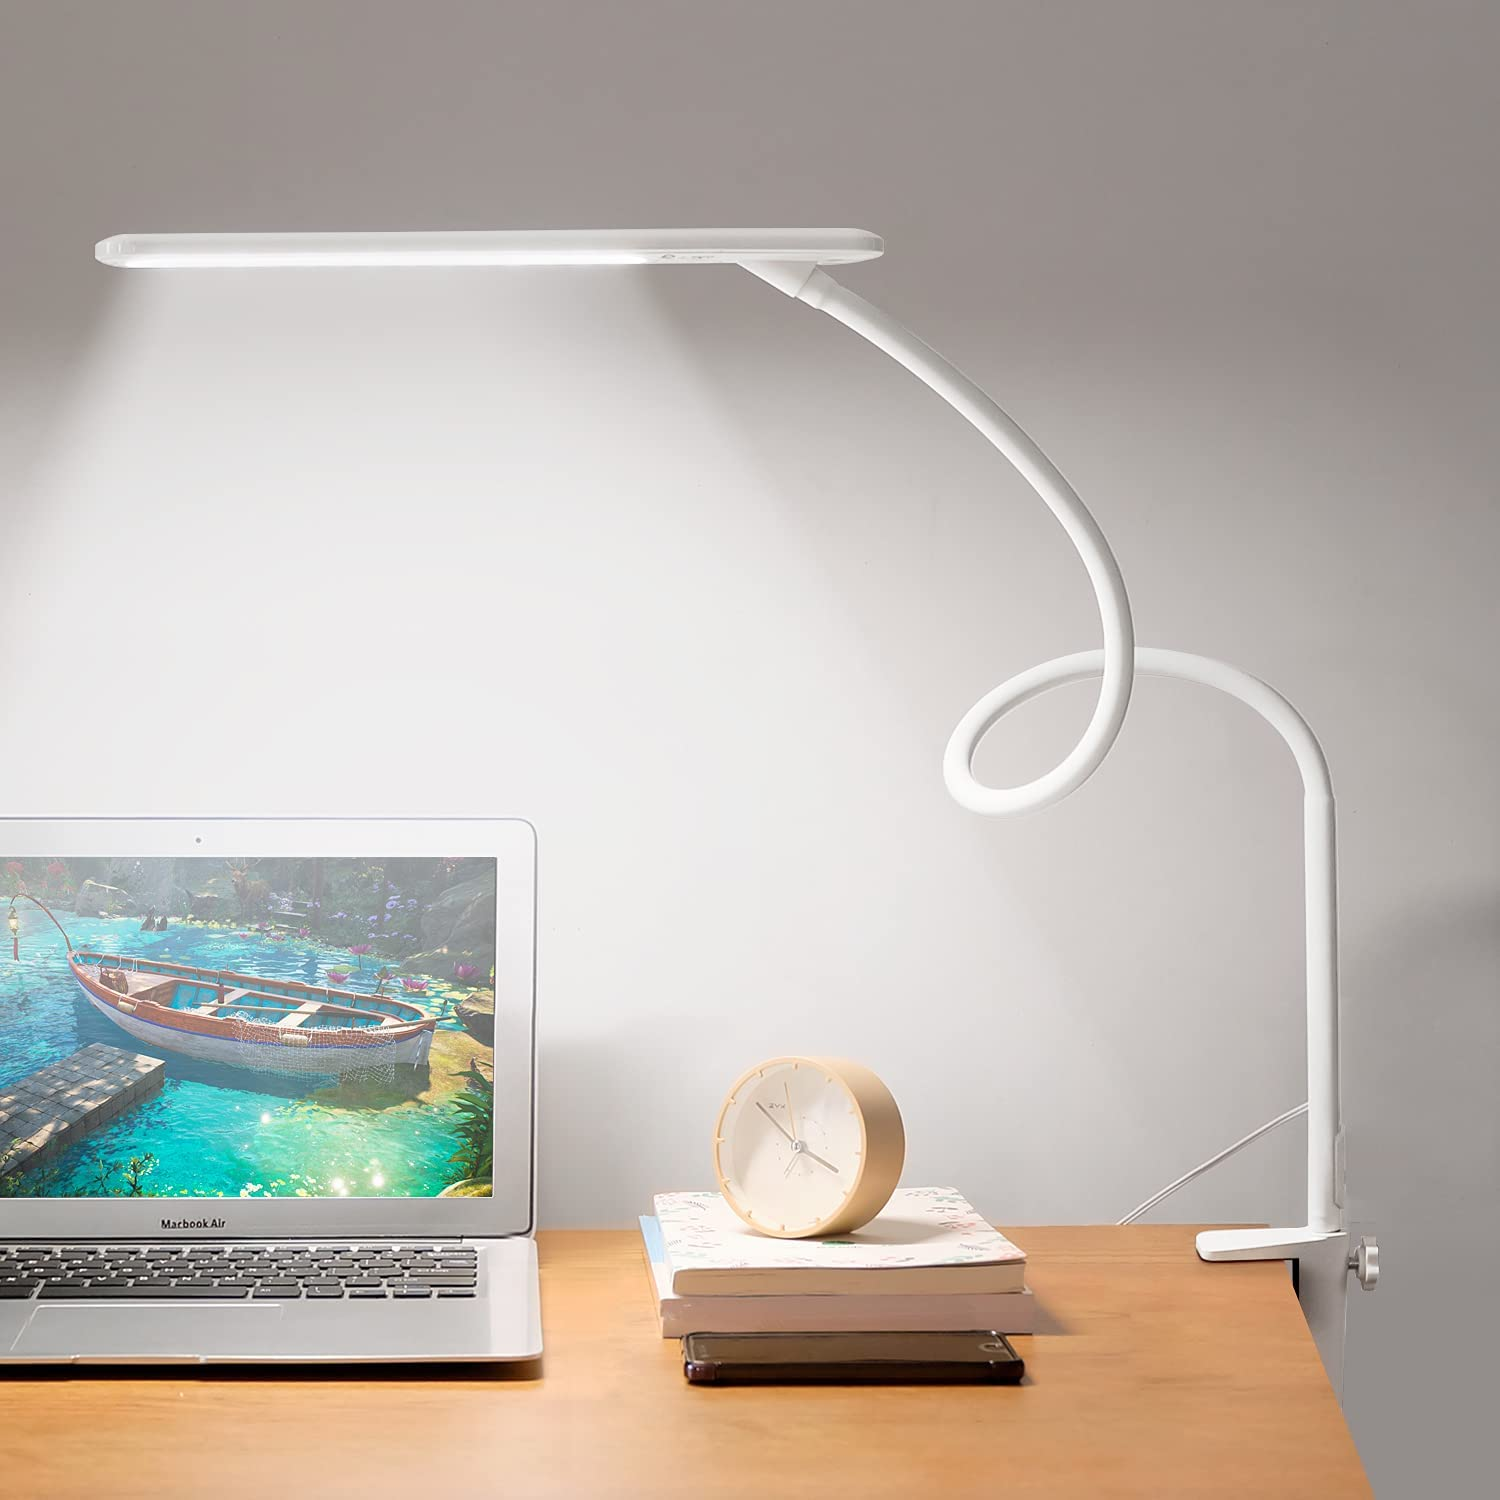 BOLOWEI LED Desk Lamp with White for Clamp Albuquerque Mall Colle Max 42% OFF Small